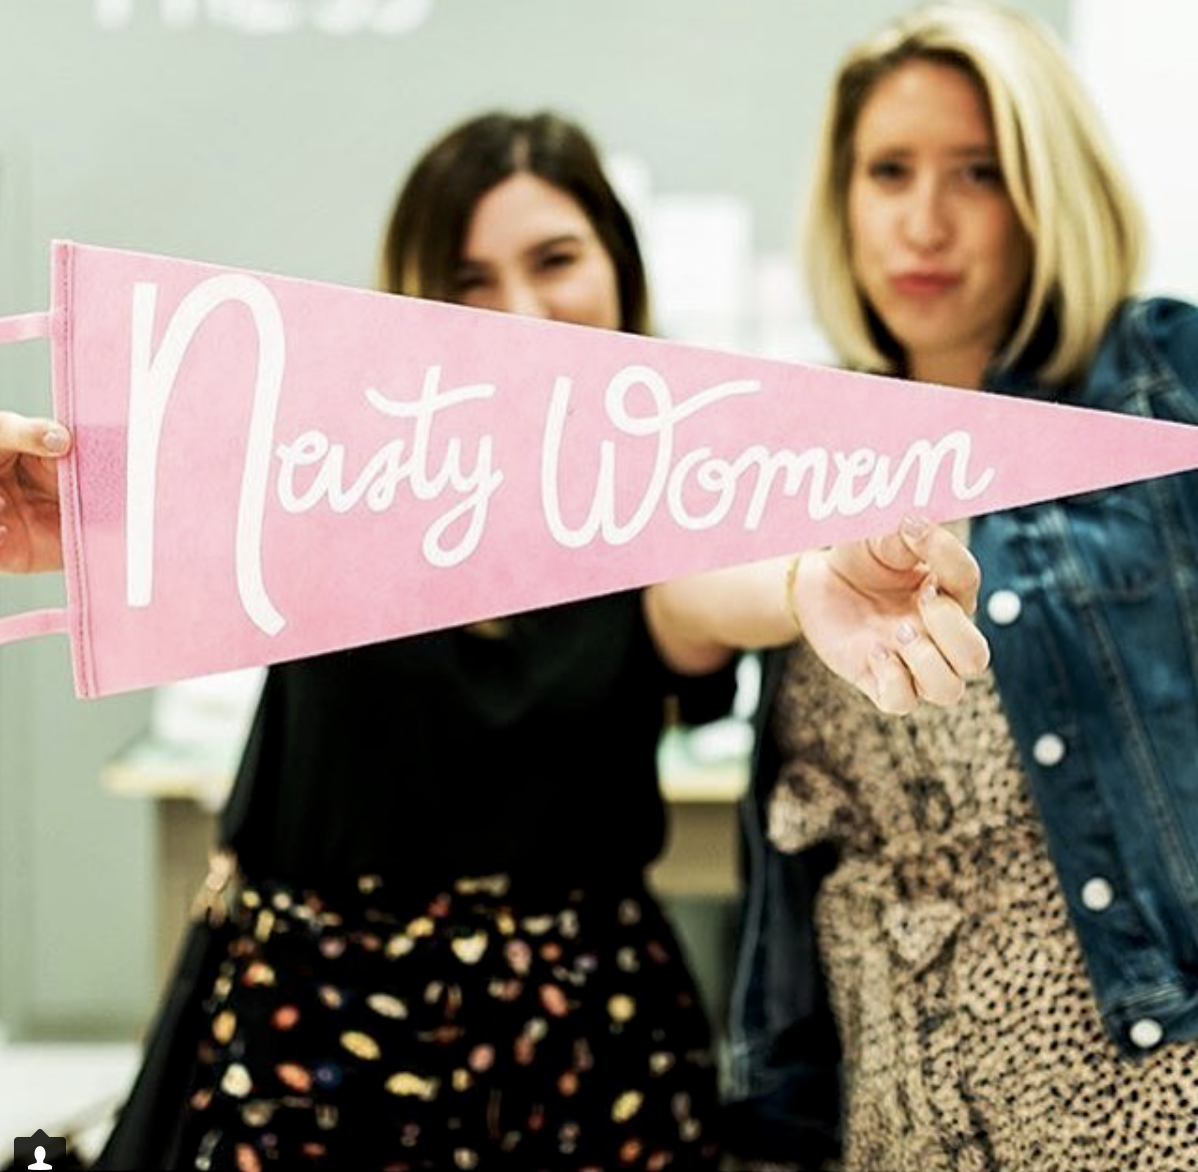 Nasty Woman banner by Aviate Press